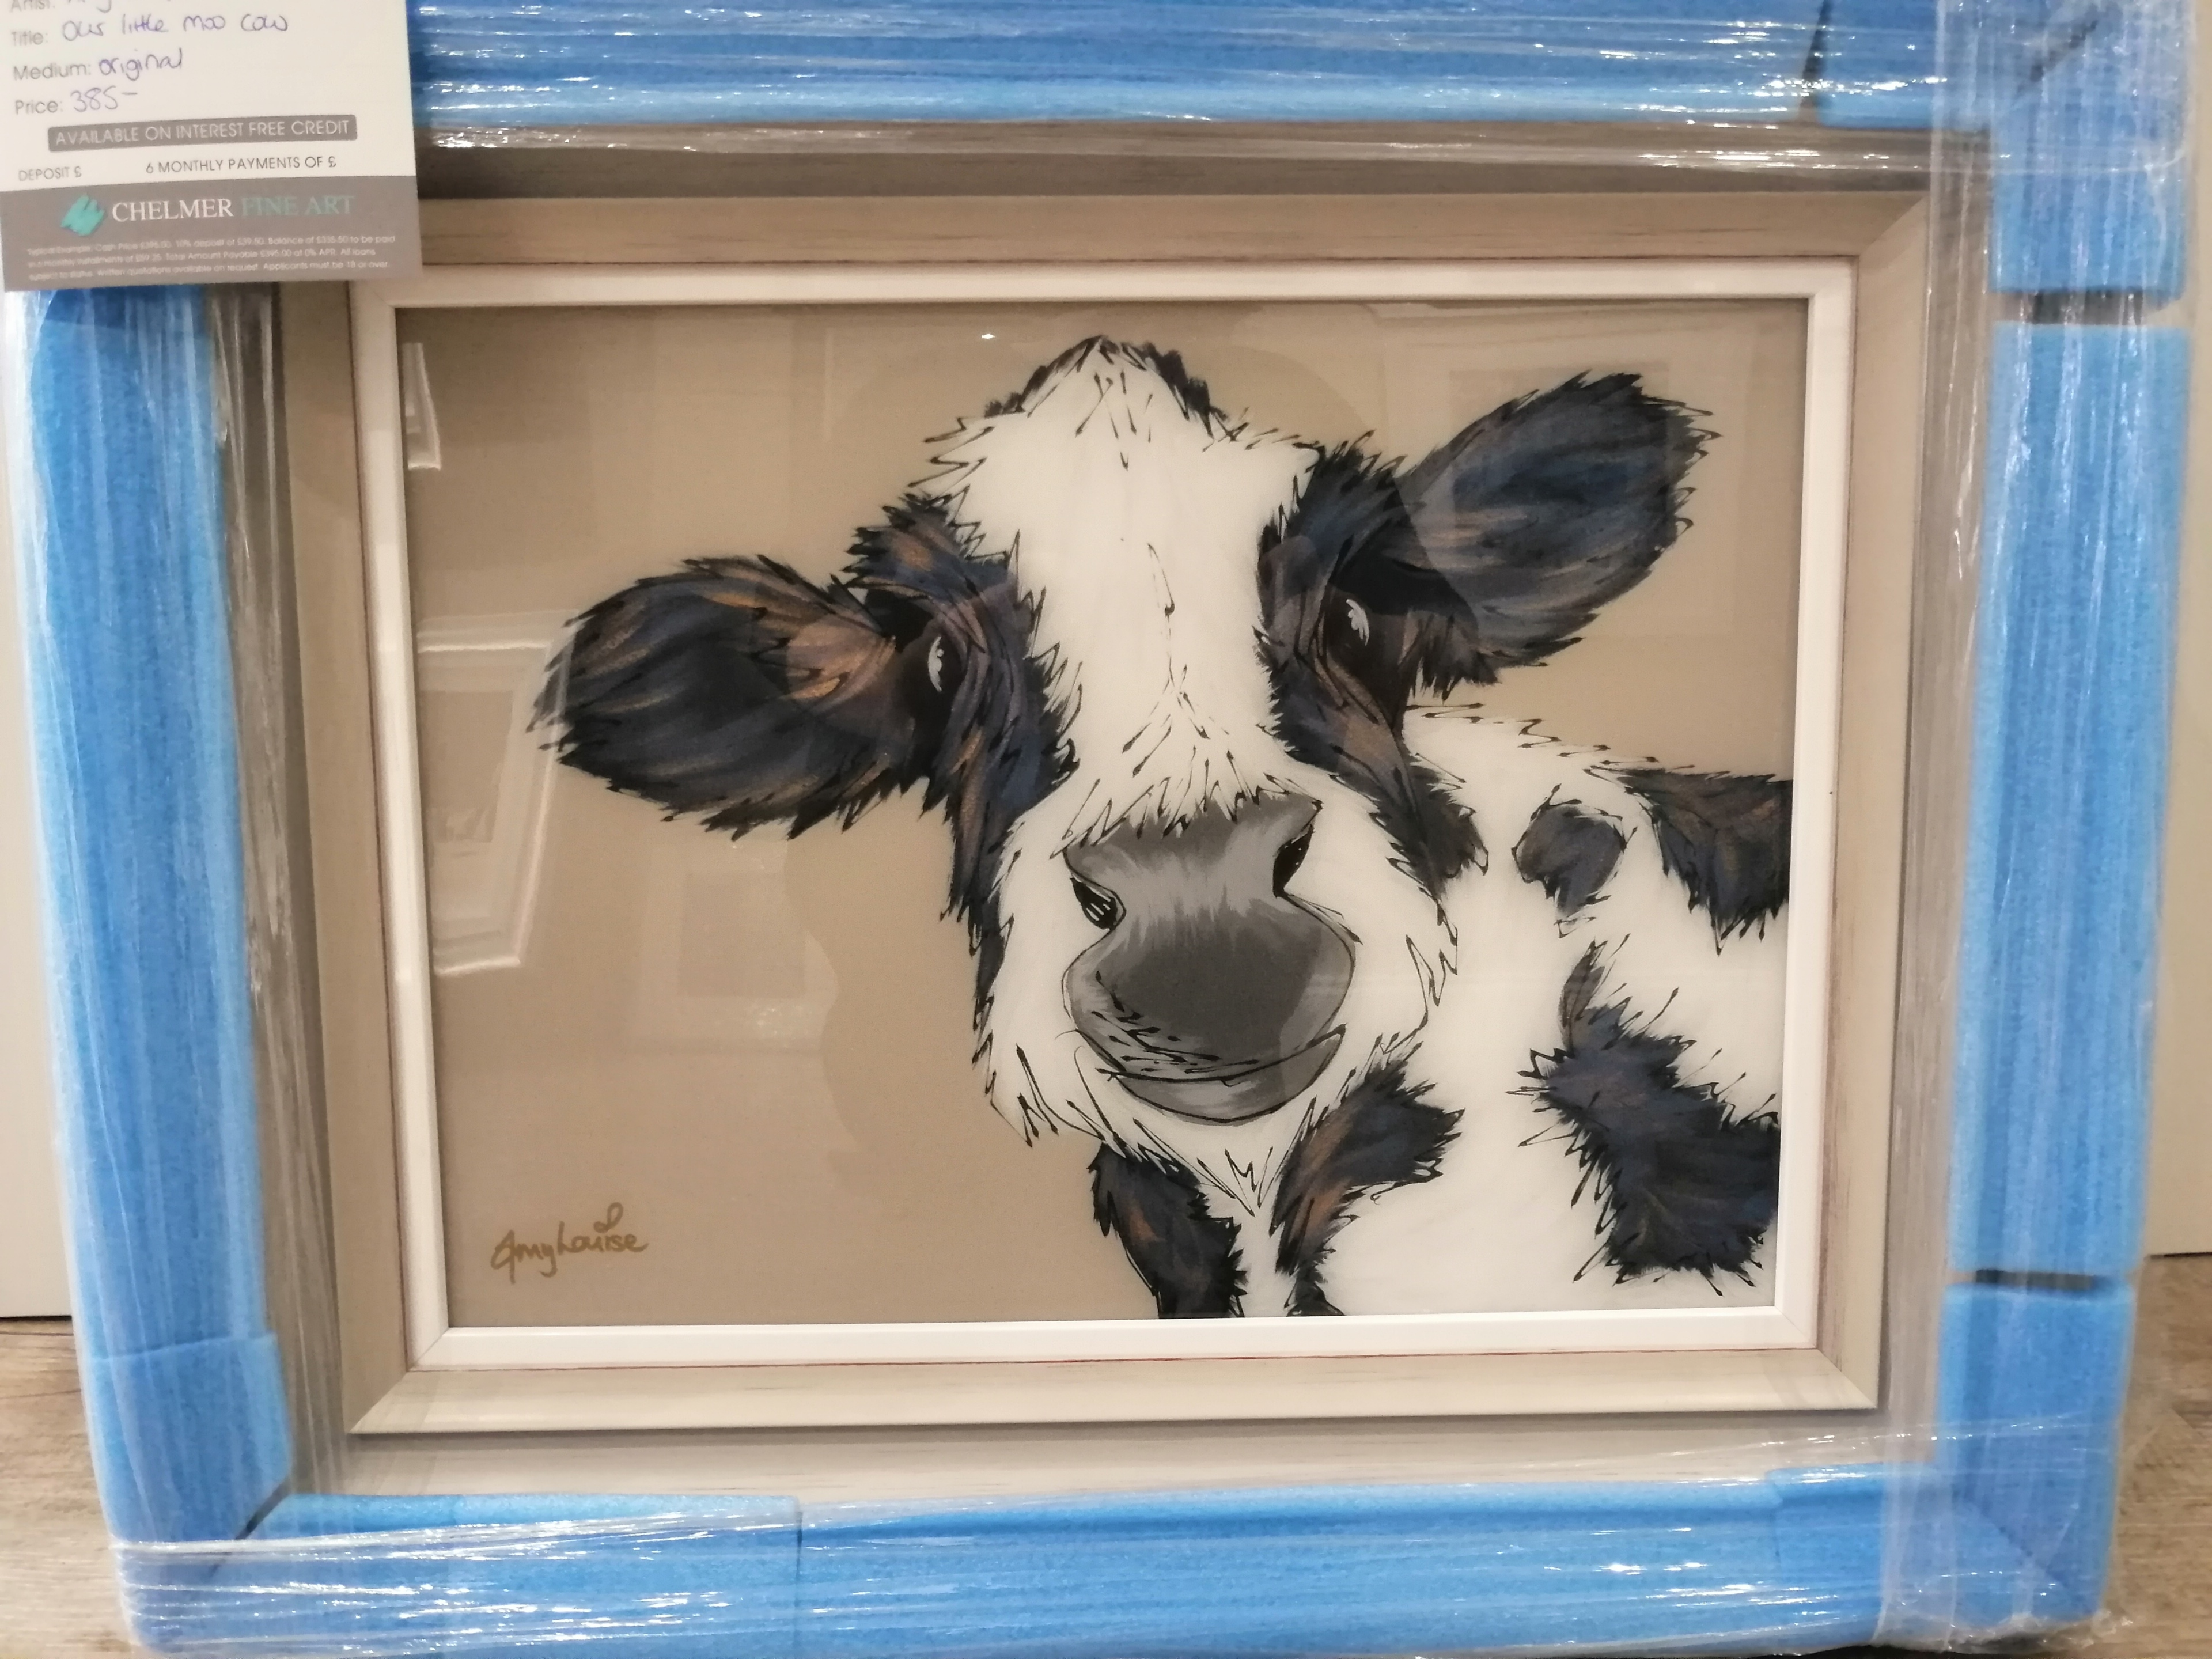 My Little Moo Cow by Amy Louise